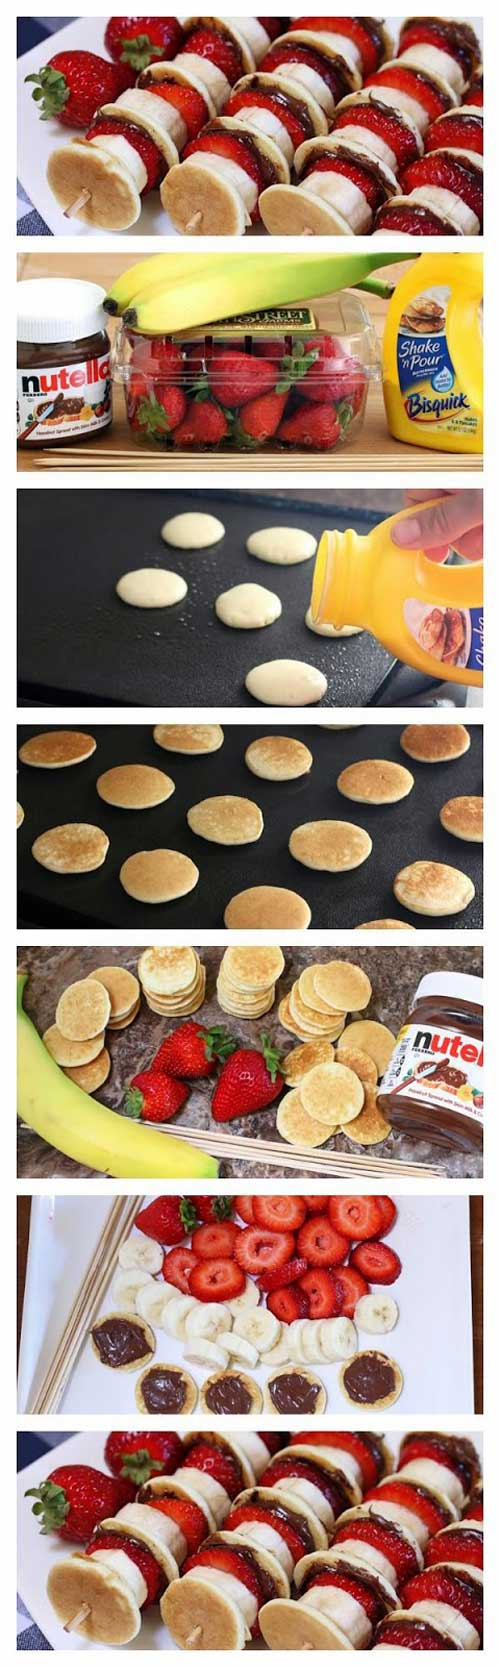 These Nutella Mini Pancake Kabobs are soft and pillowy pancakes slathered with Nutella and layered on skewers with fresh strawberries and banana.